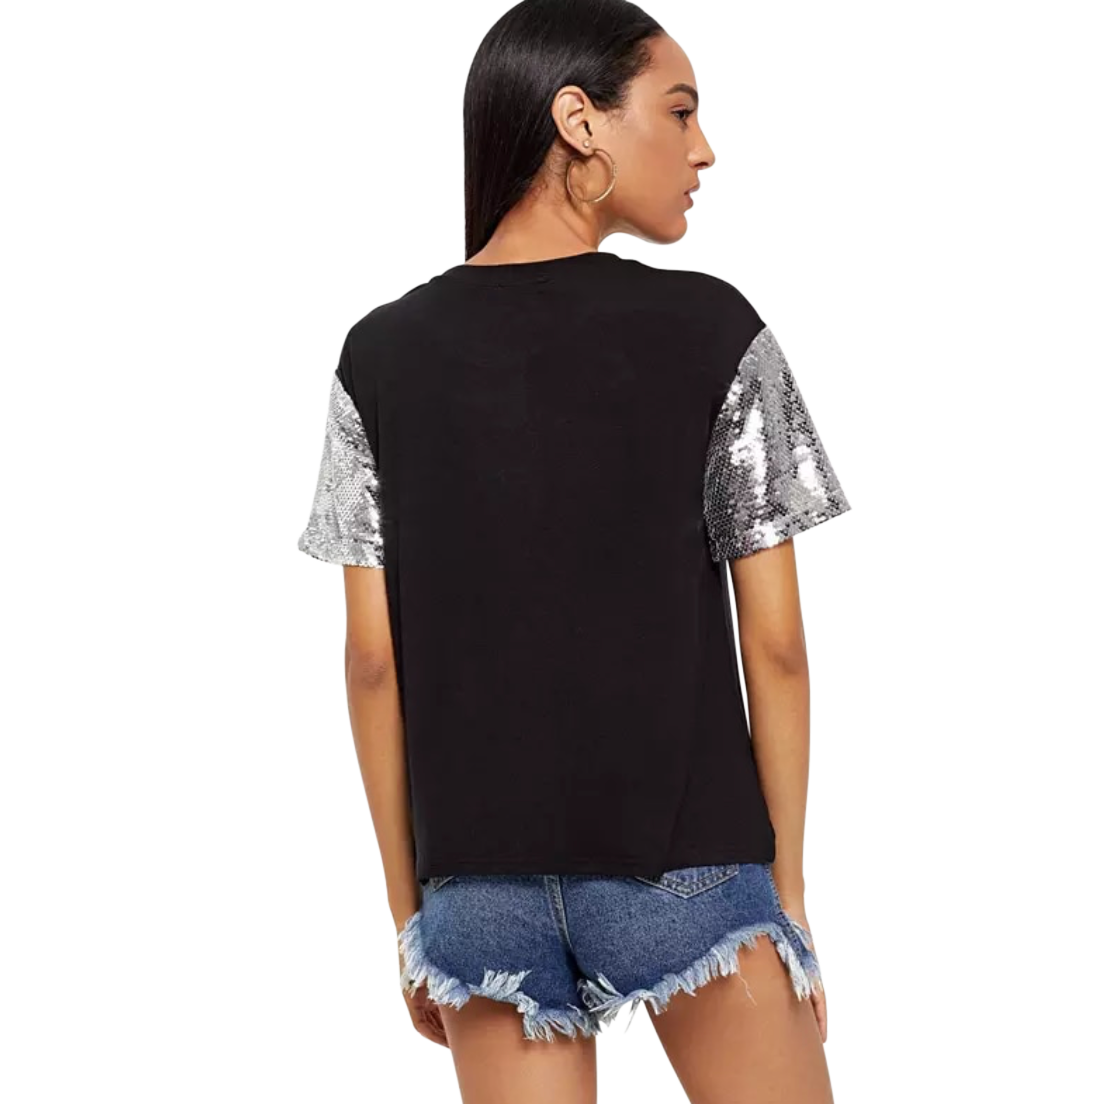 Black and Silver Sequinned Short Sleeve T-Shirt - coleculture